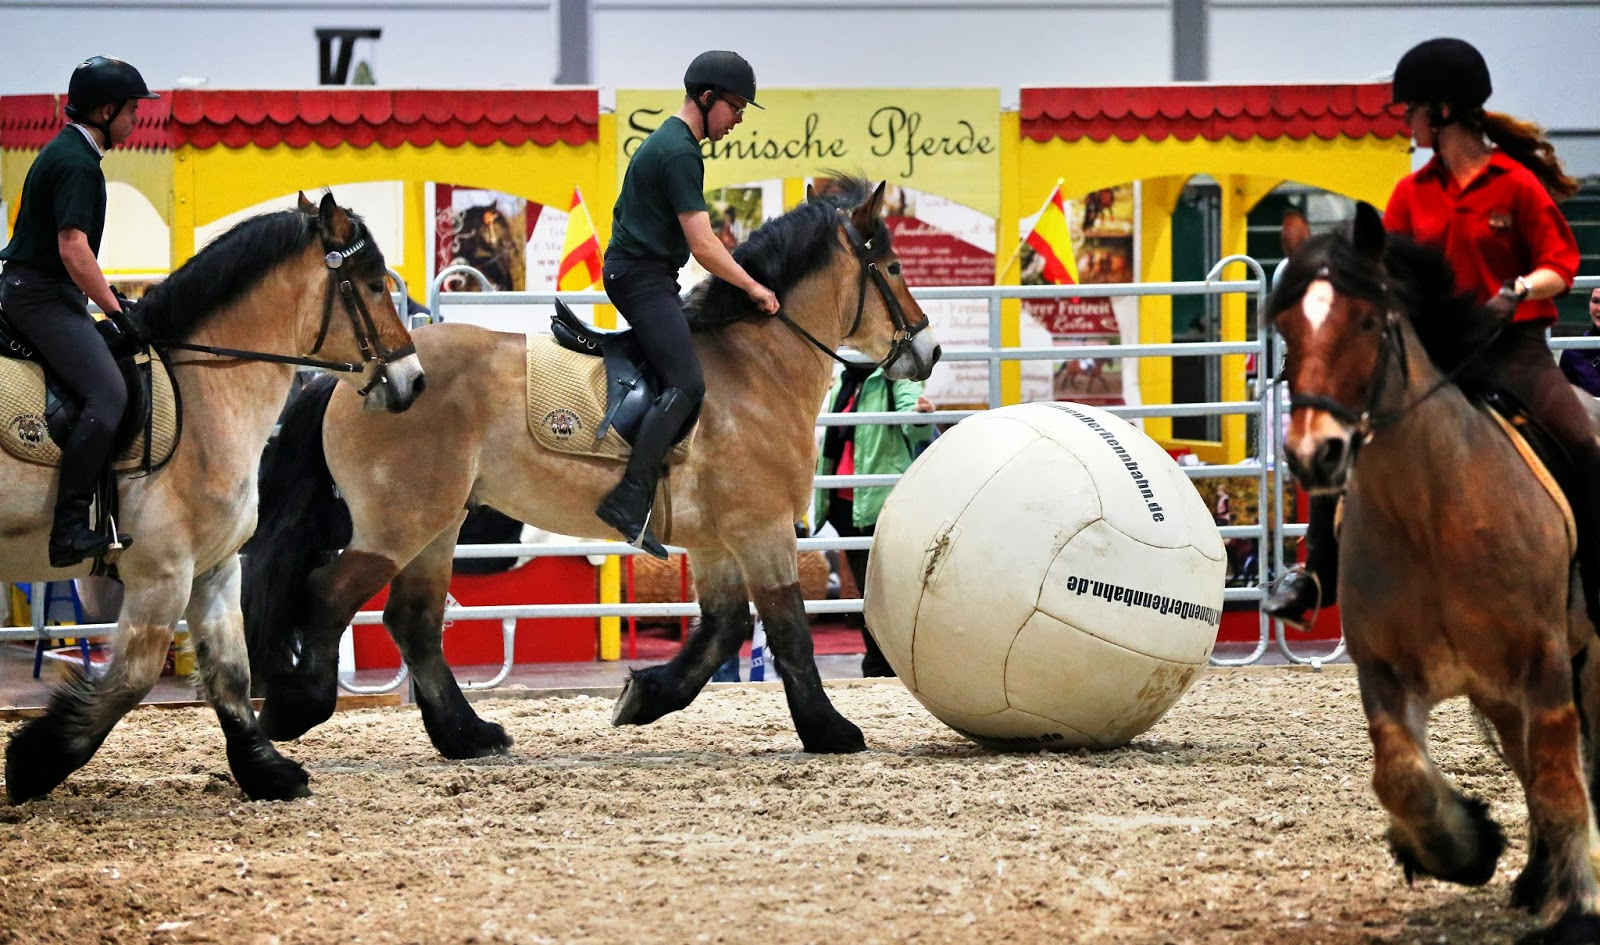 Agriculture, Animal, Blankets, Exhibition, Fair, Feed, Football, Germany, Horse, Leipzig, Luxury, Partner Pferd, Soccer, Sports,